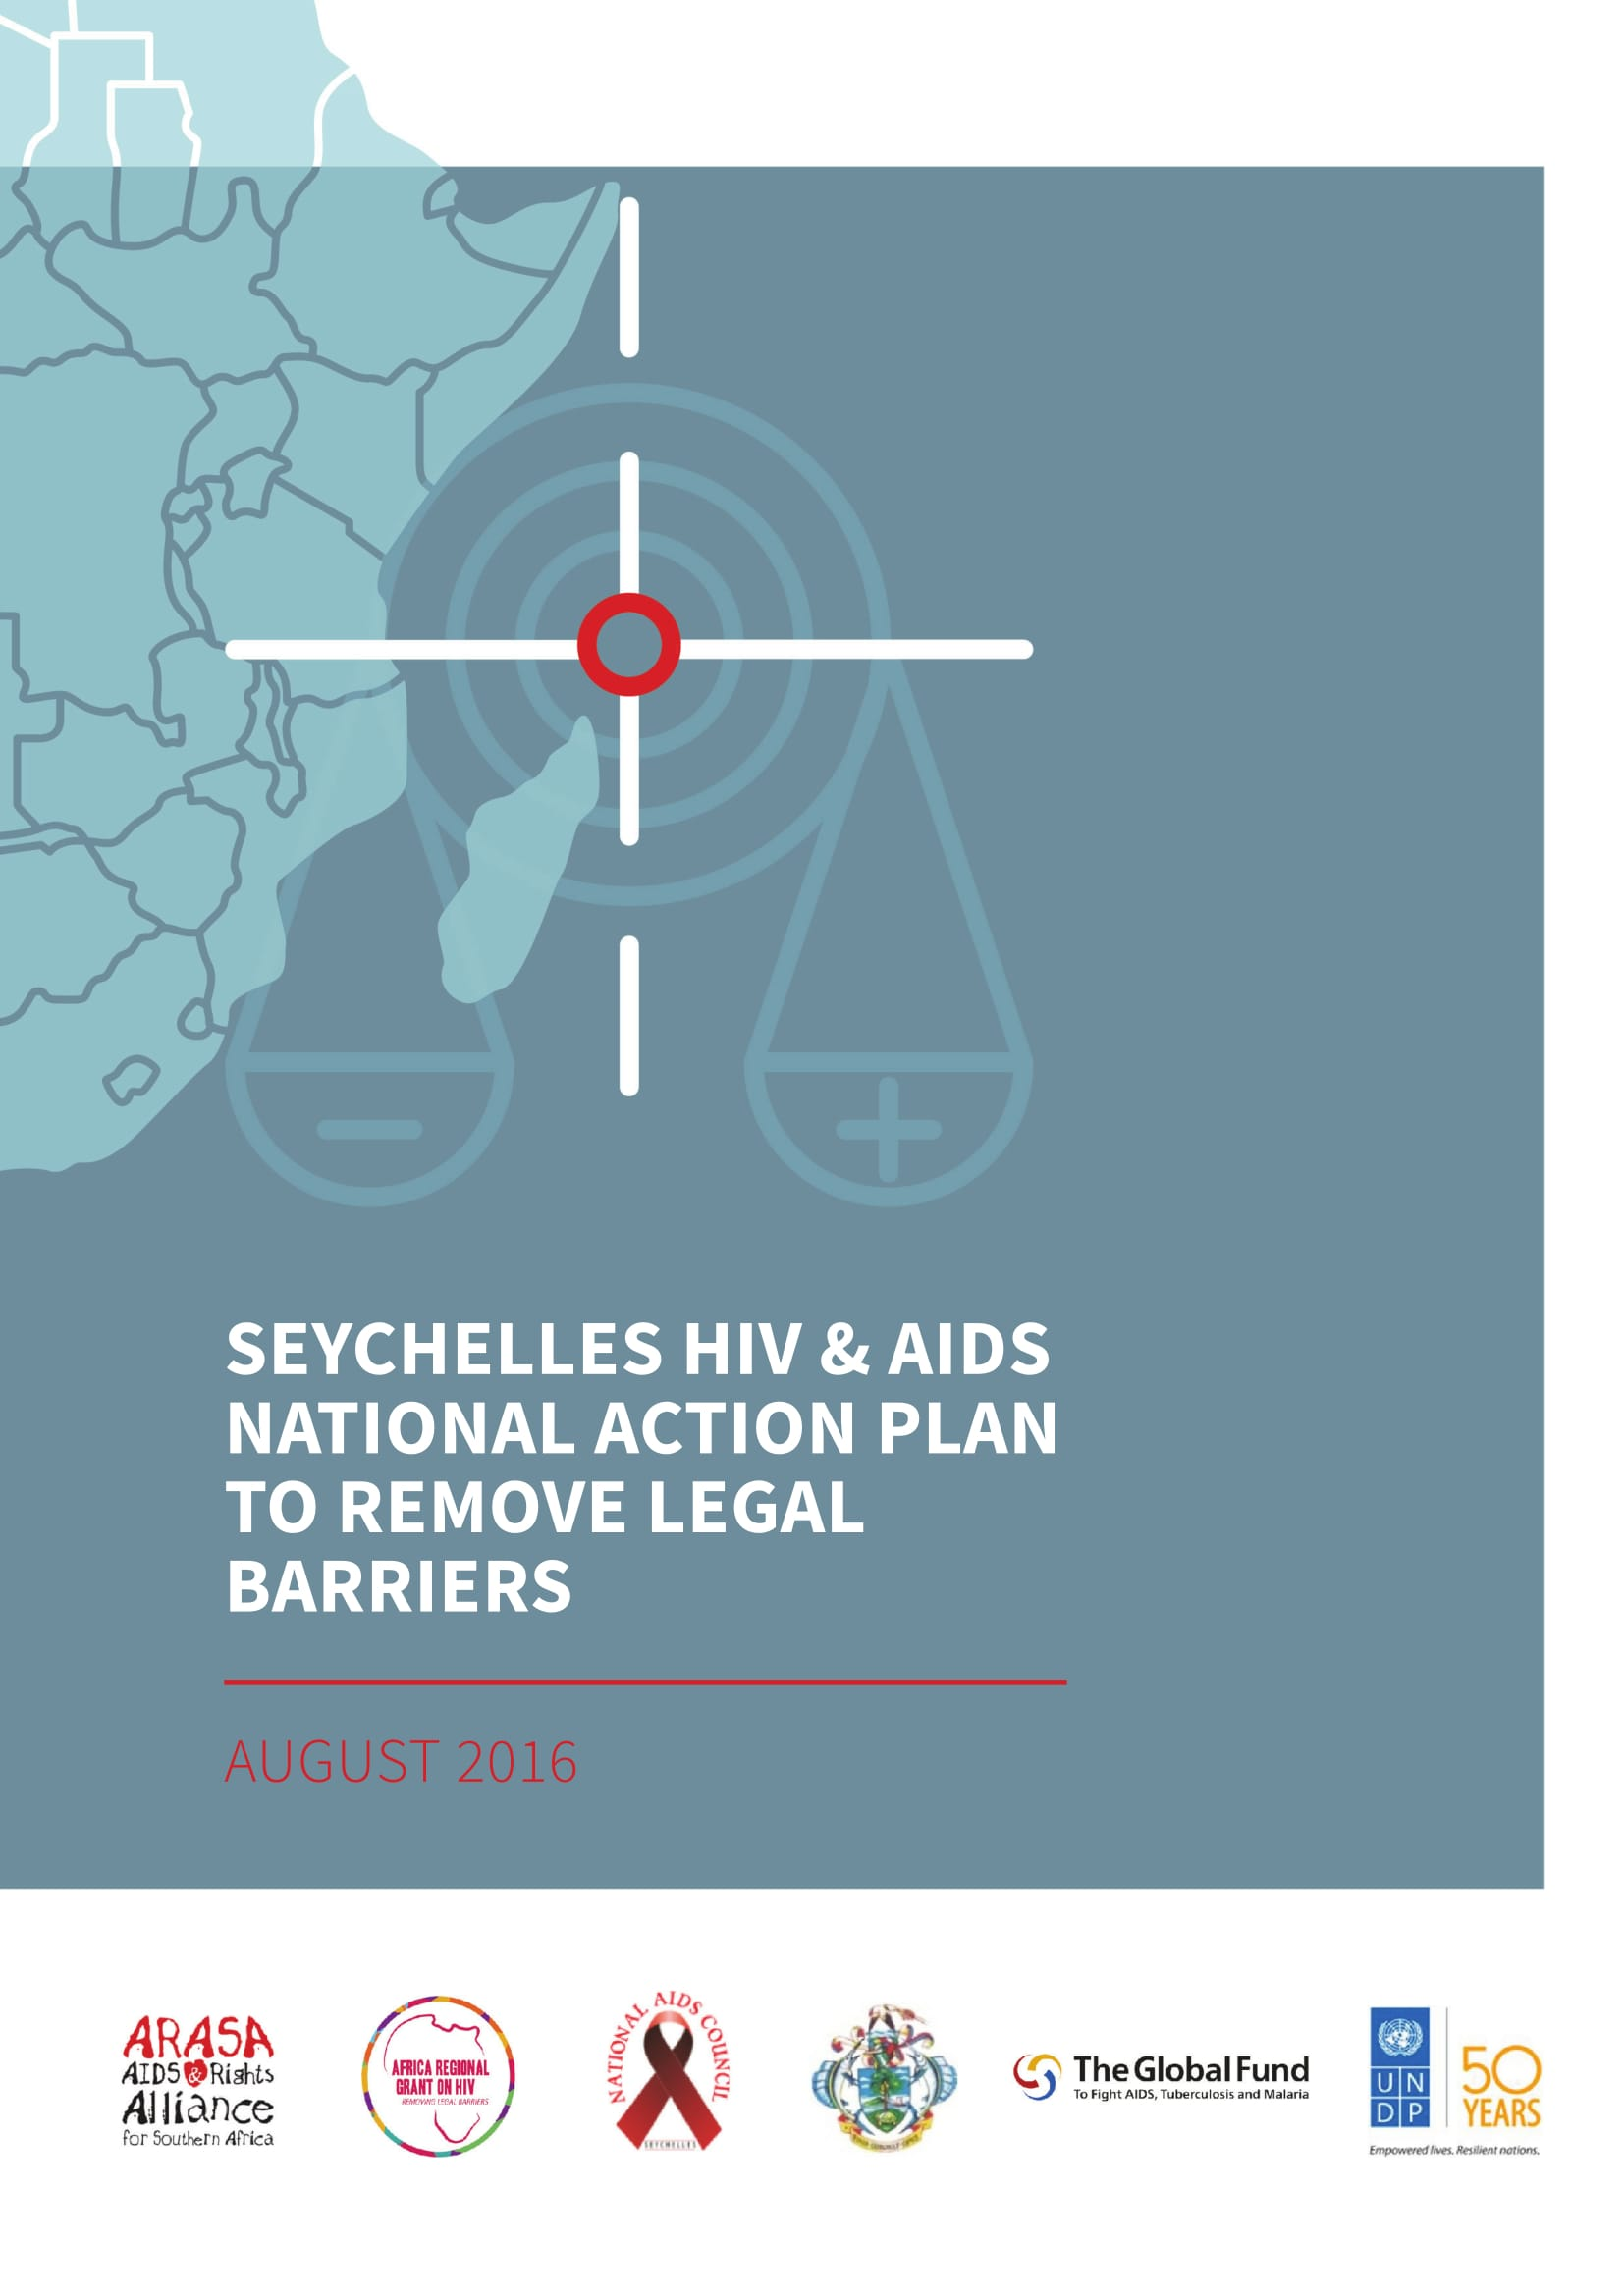 Seychelles HIV & AIDS National Action Plan to Remove Legal Barriers